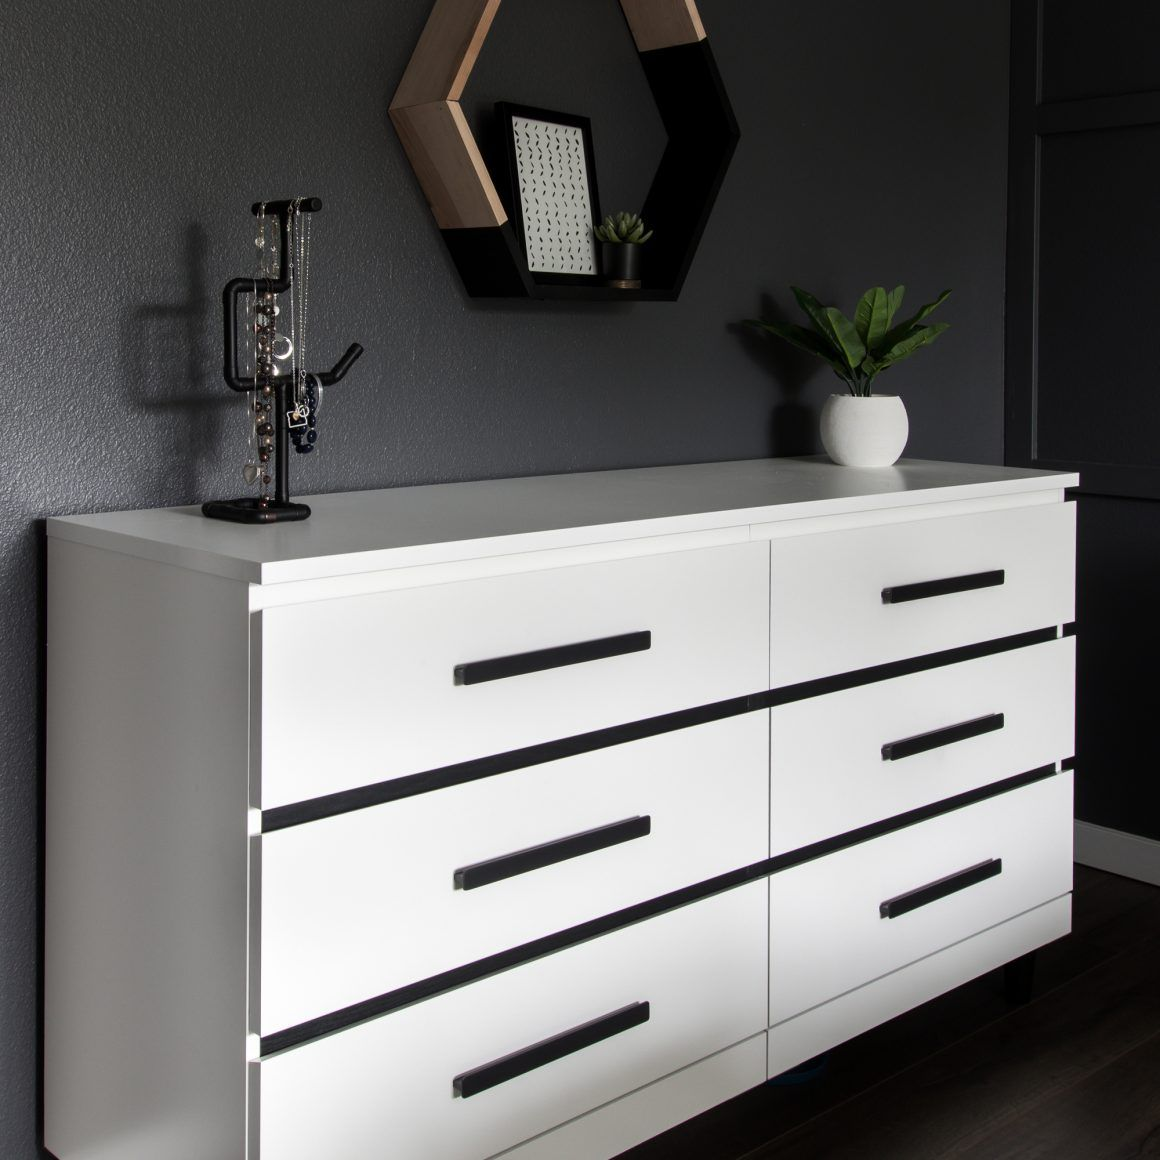 Before & After IKEA Malm Dresser Makeover (With images